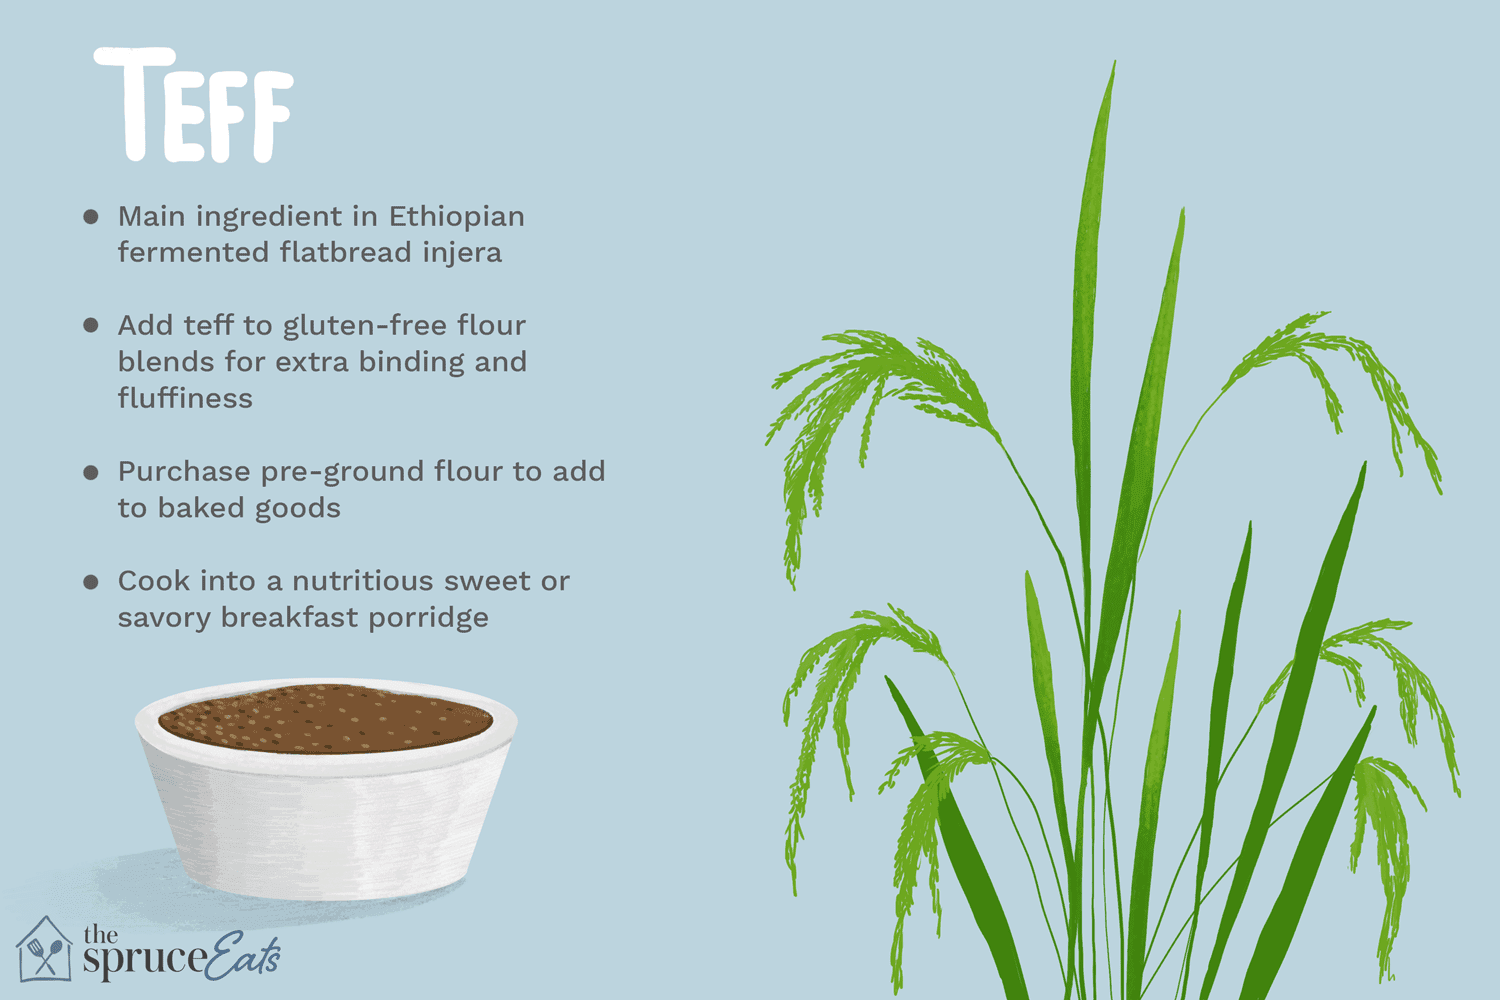 What Is Teff and How Is It Used?